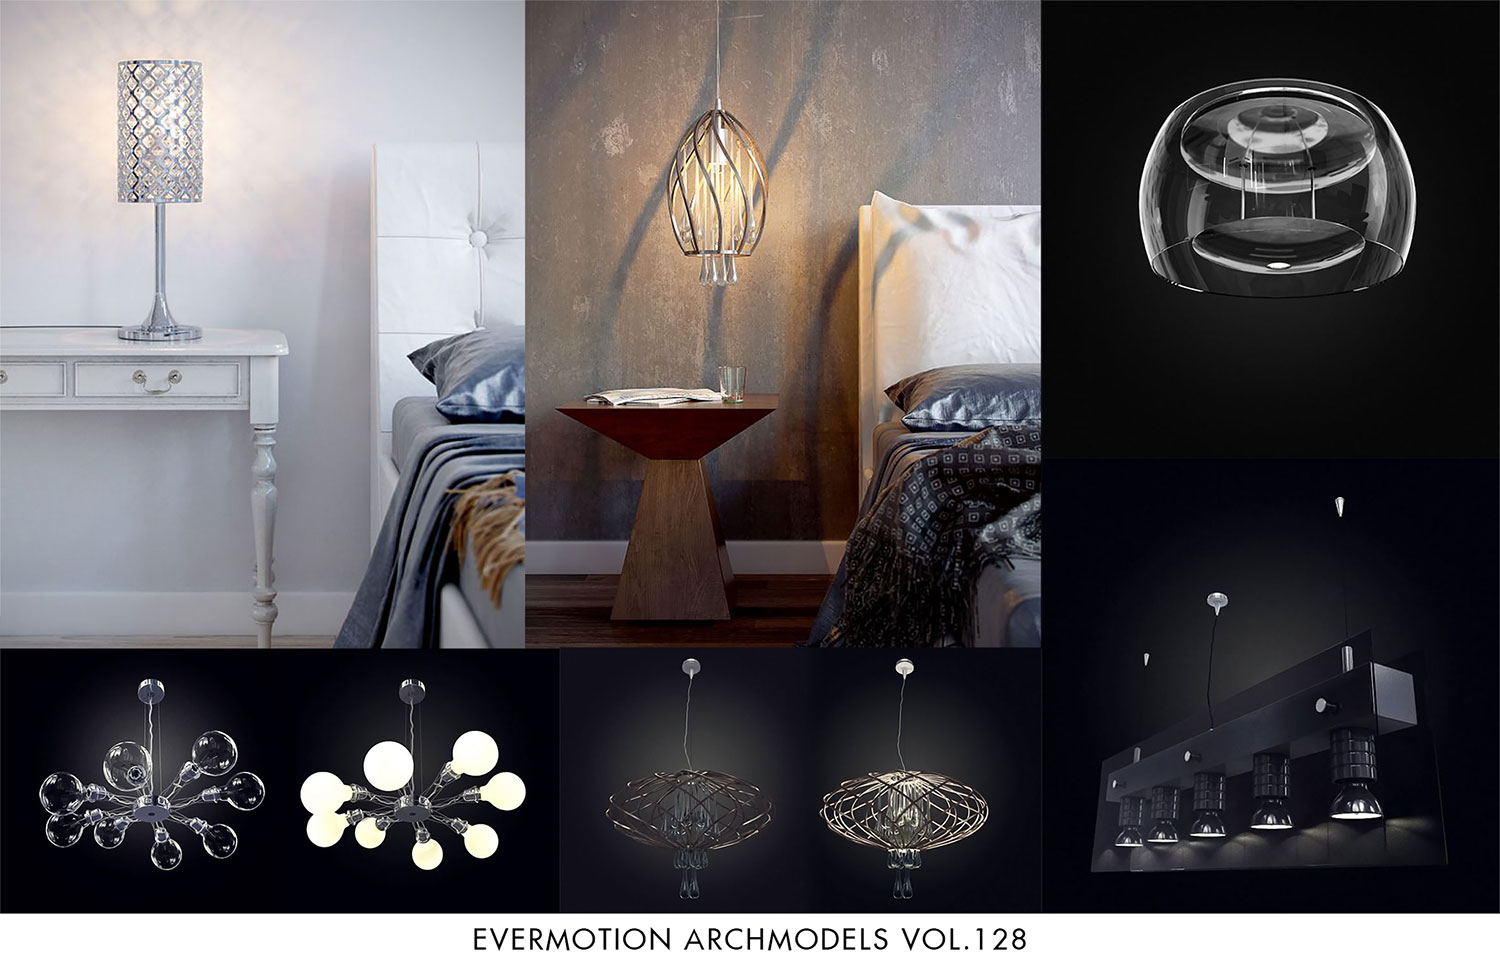 Evermotion Archmodels Vol 128 - Modern Interior Lamps